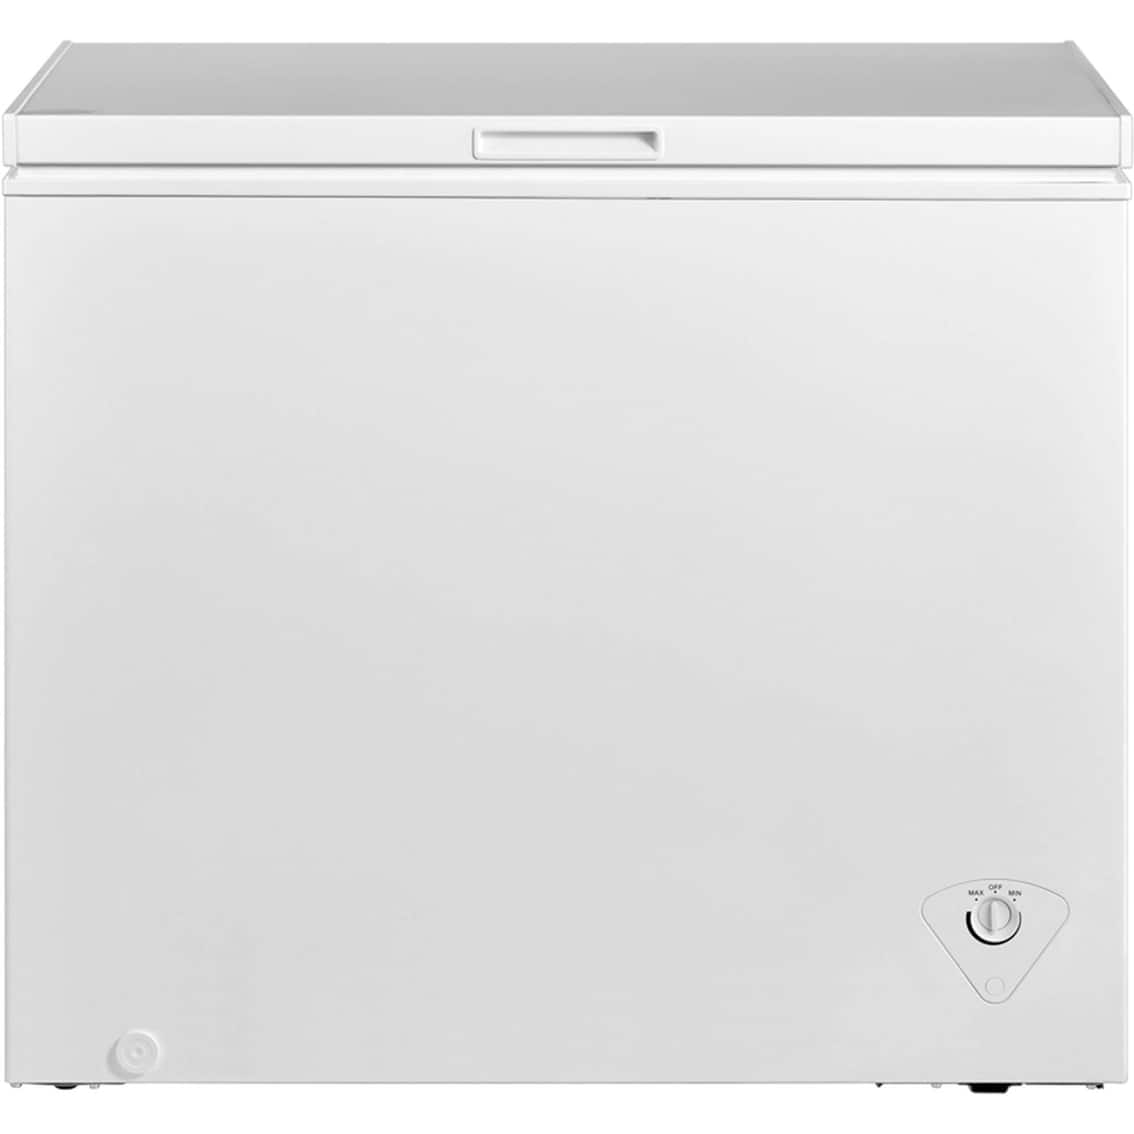 MILITARY ONLY Midea 7 Cubic Foot Chest Freezer AAFES $189